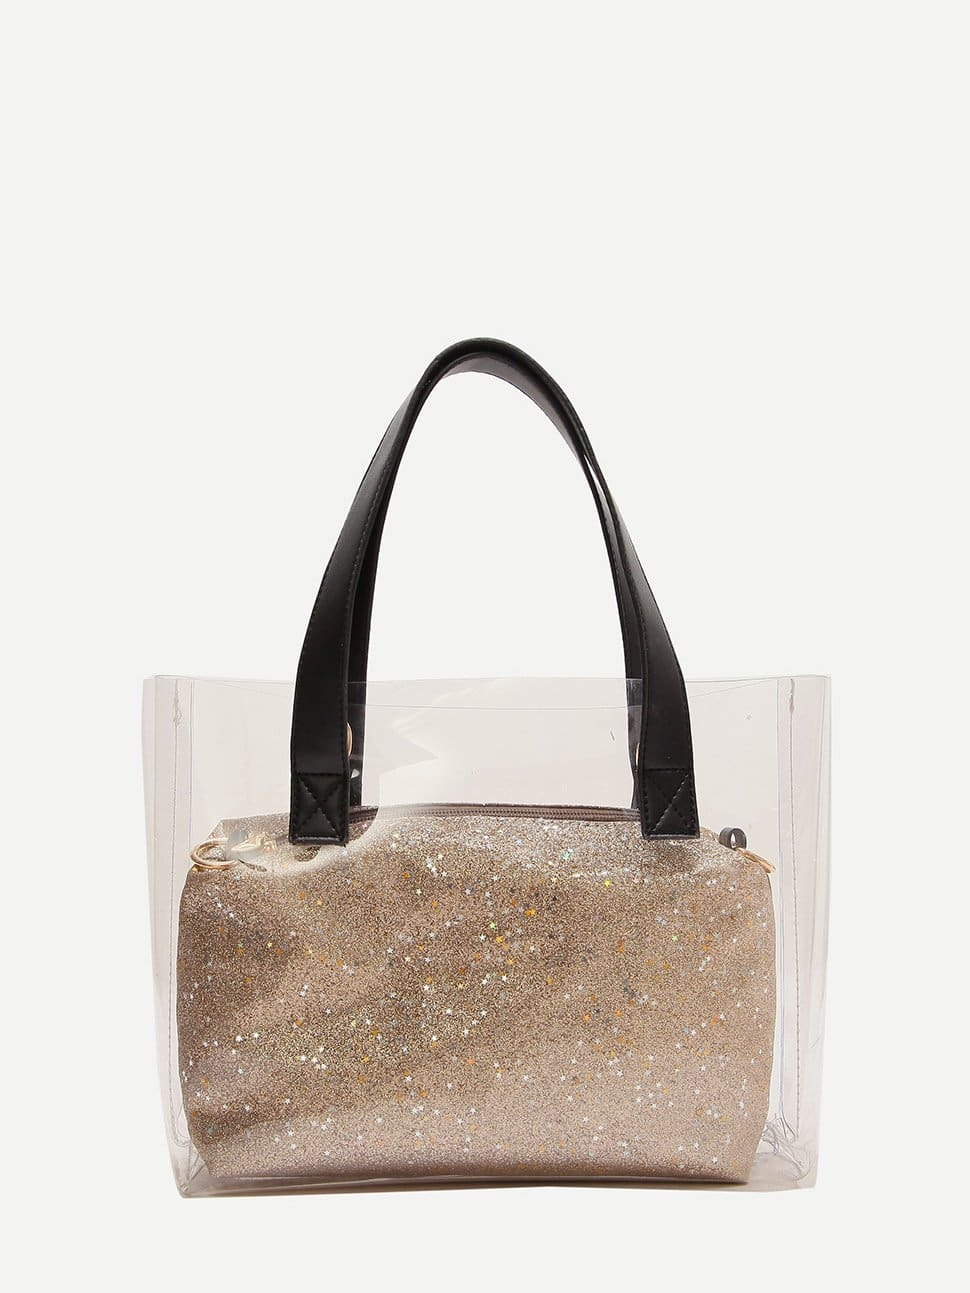 Clear Tote Bag With Star Glitter Clutch transparent envelope clutch bag